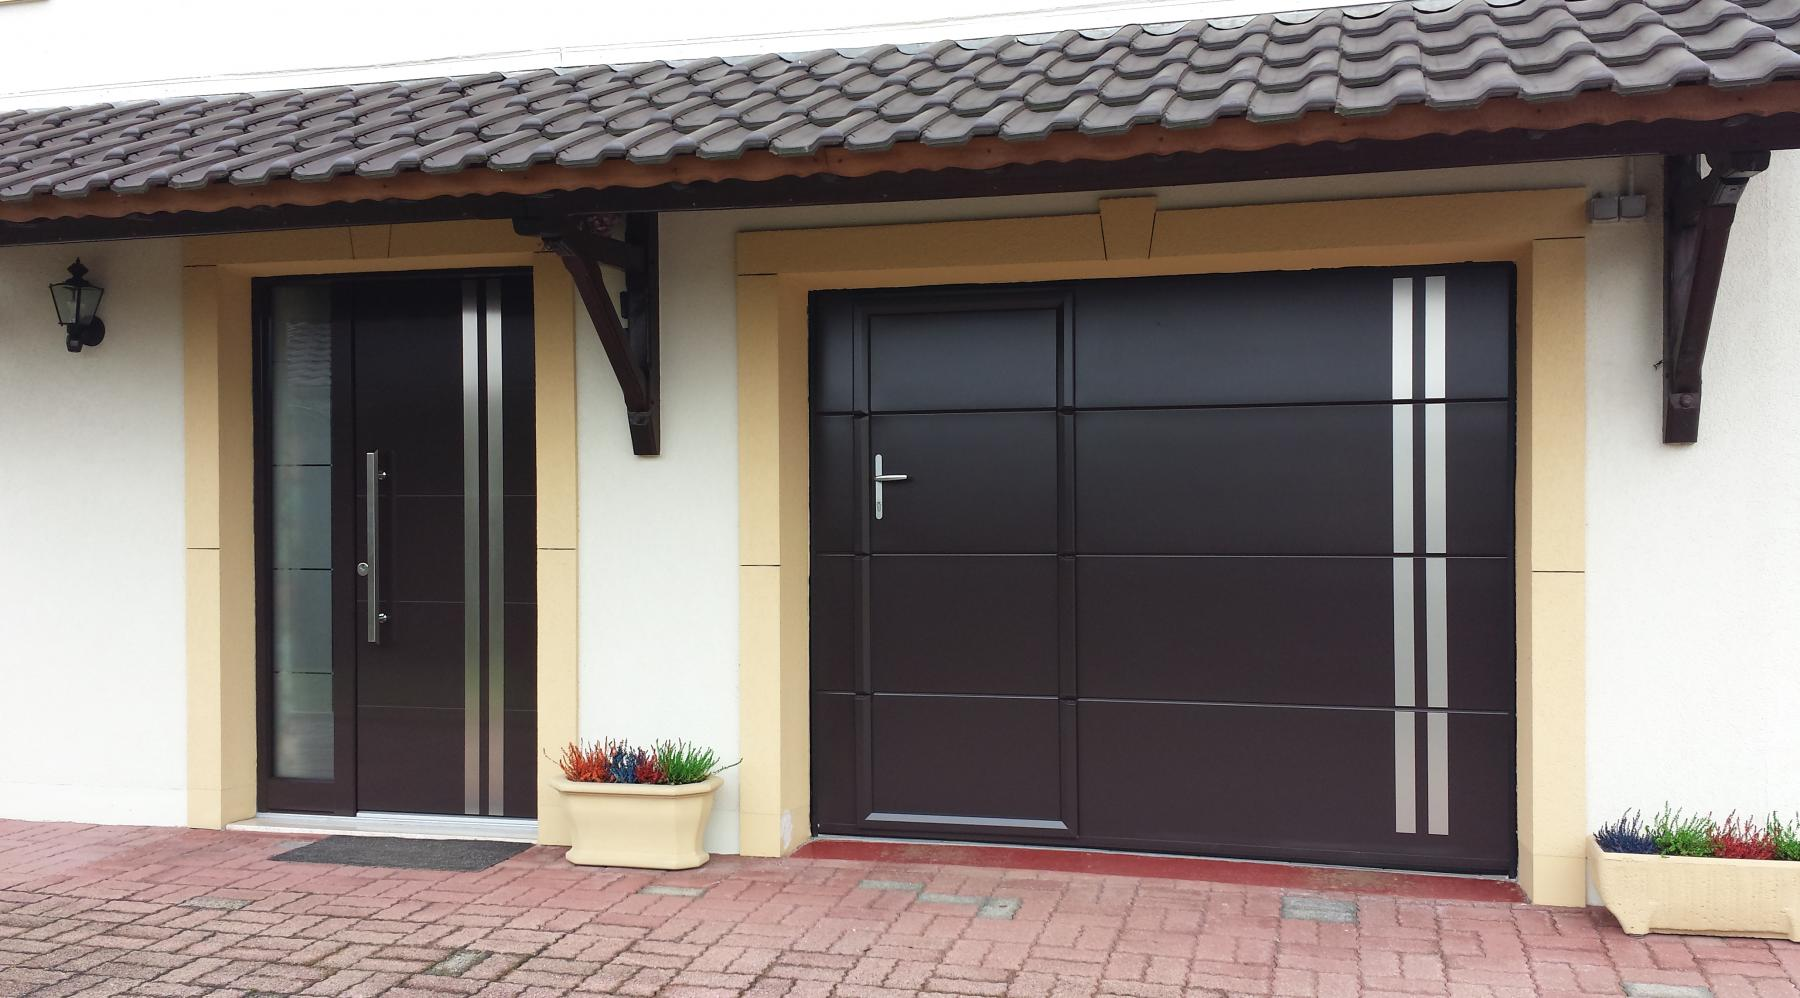 Galerie portes de garage weigerding for Monter porte de garage